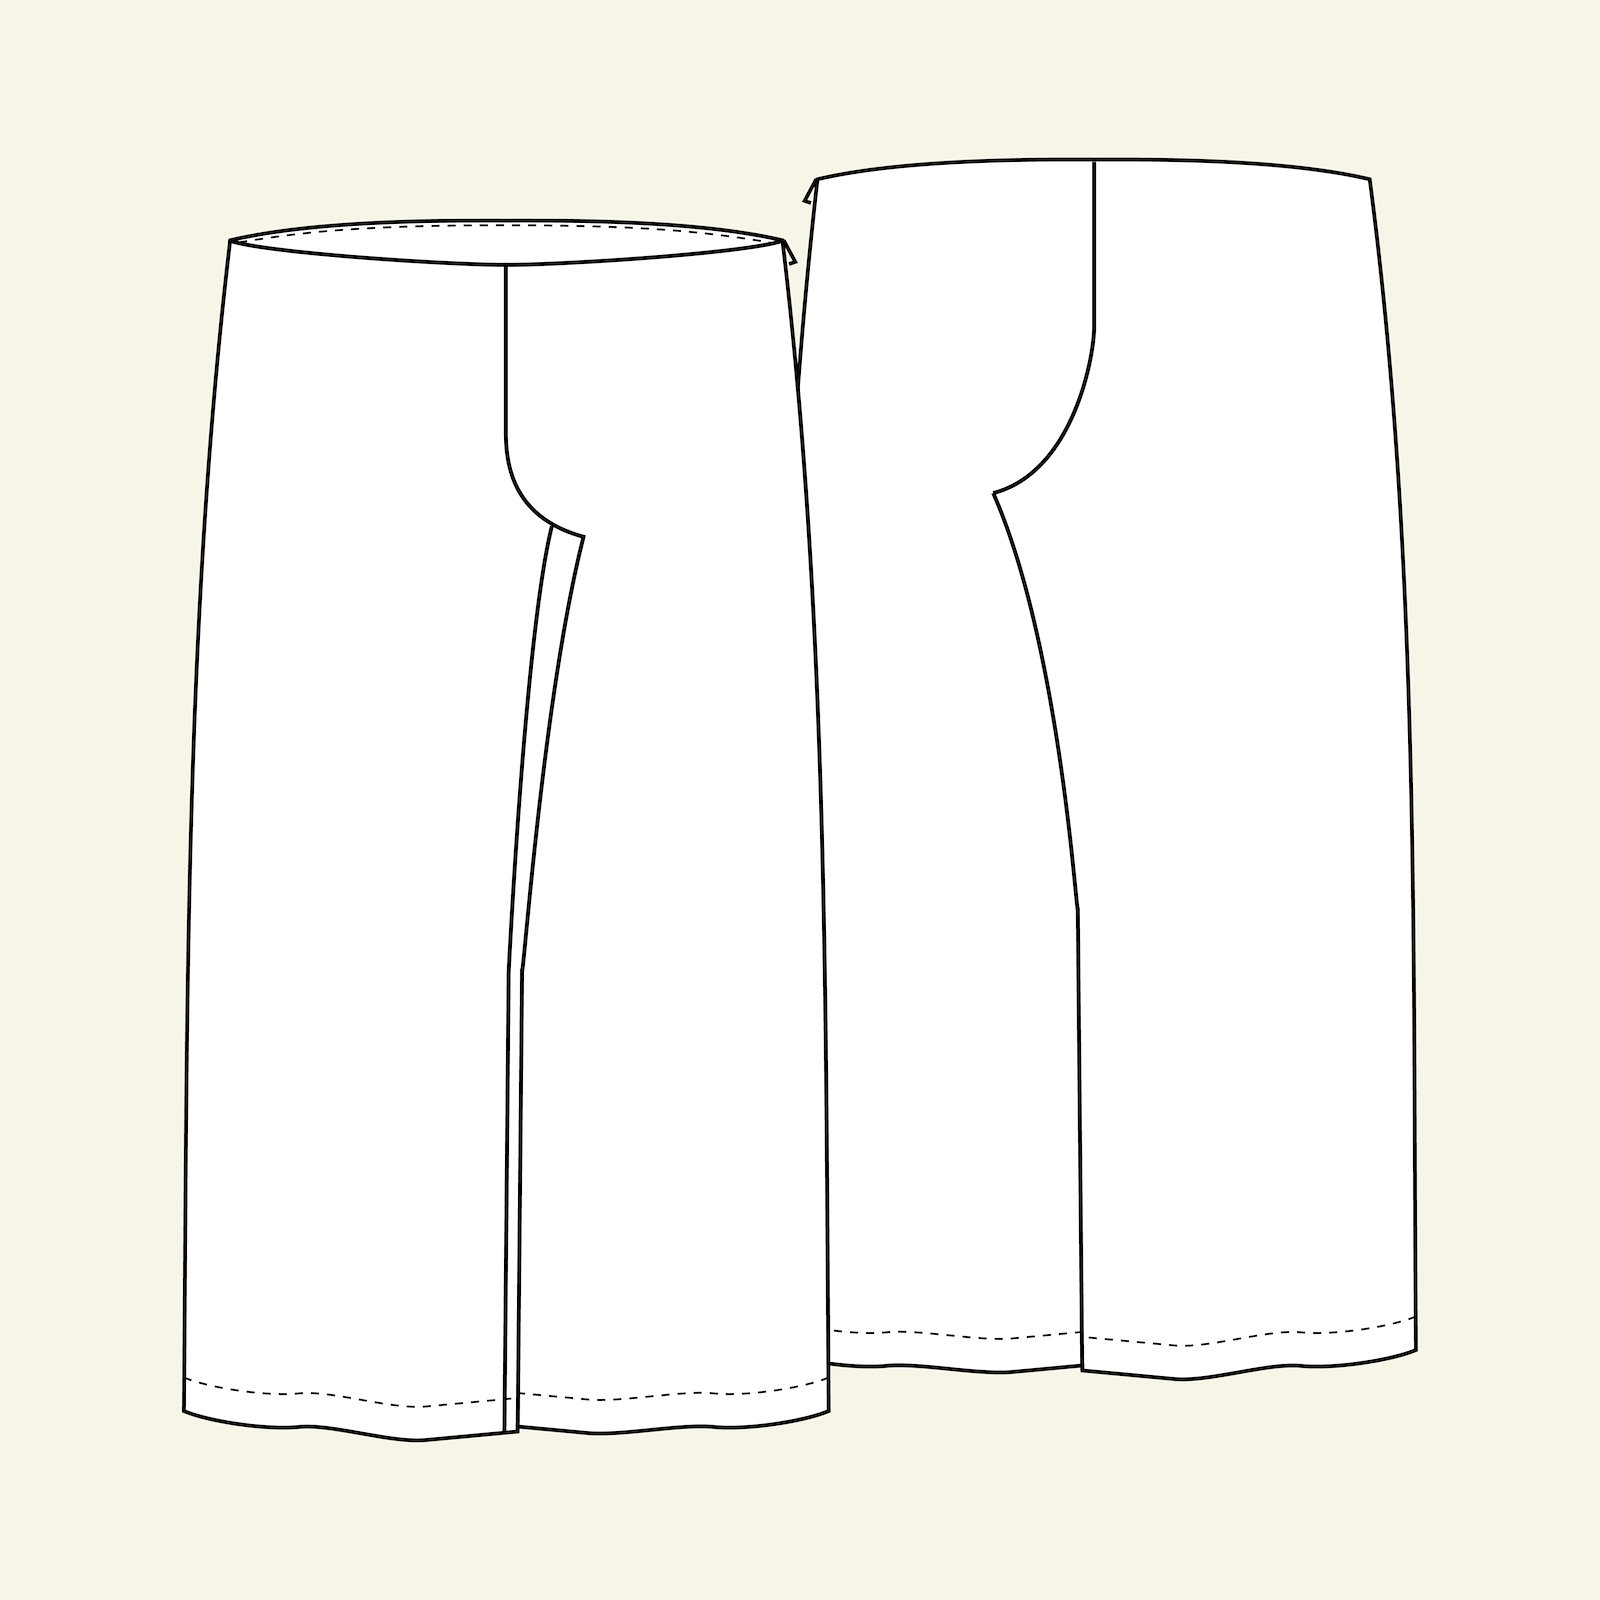 Boot cut trousers, 52/24 p70005_pack